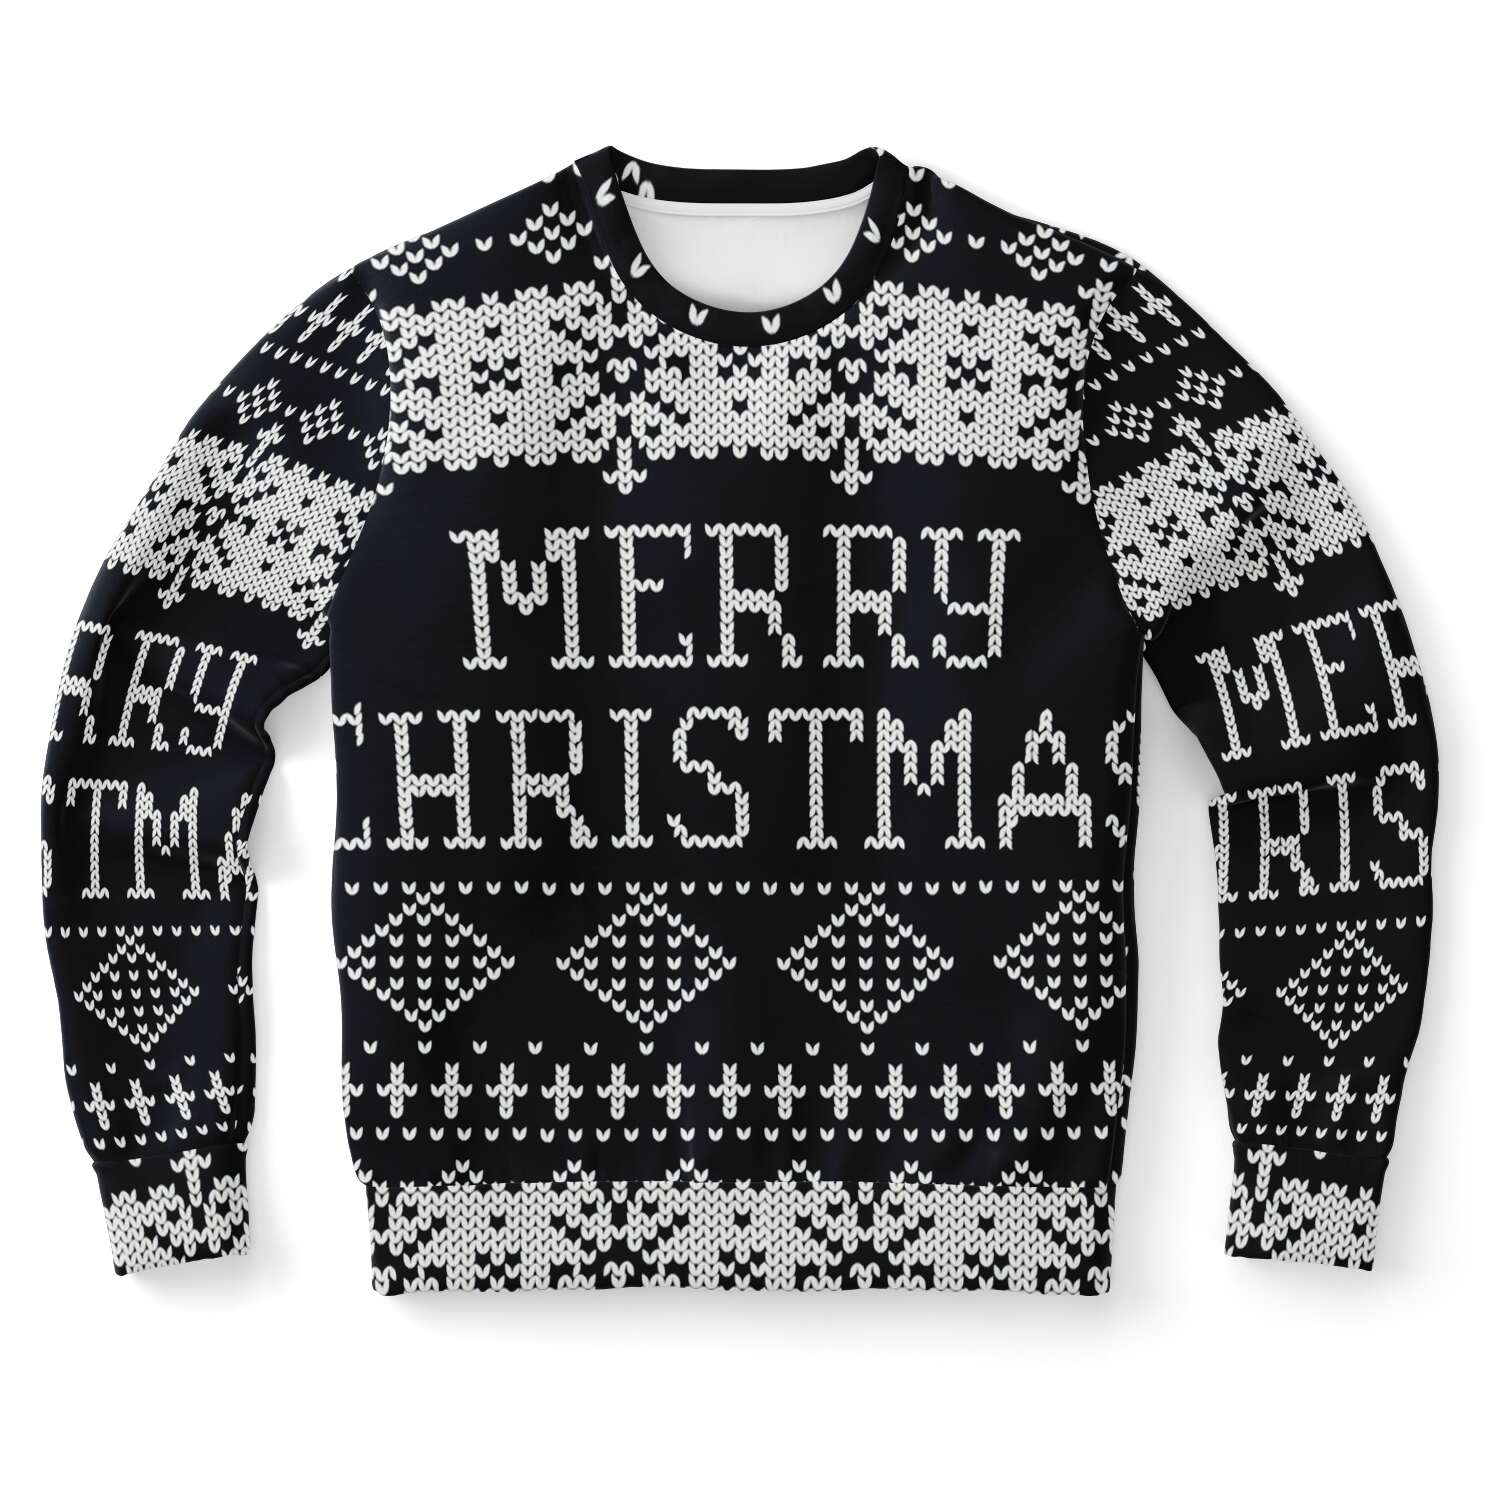 Allno Ugly Merry Christmas Sweatshirt